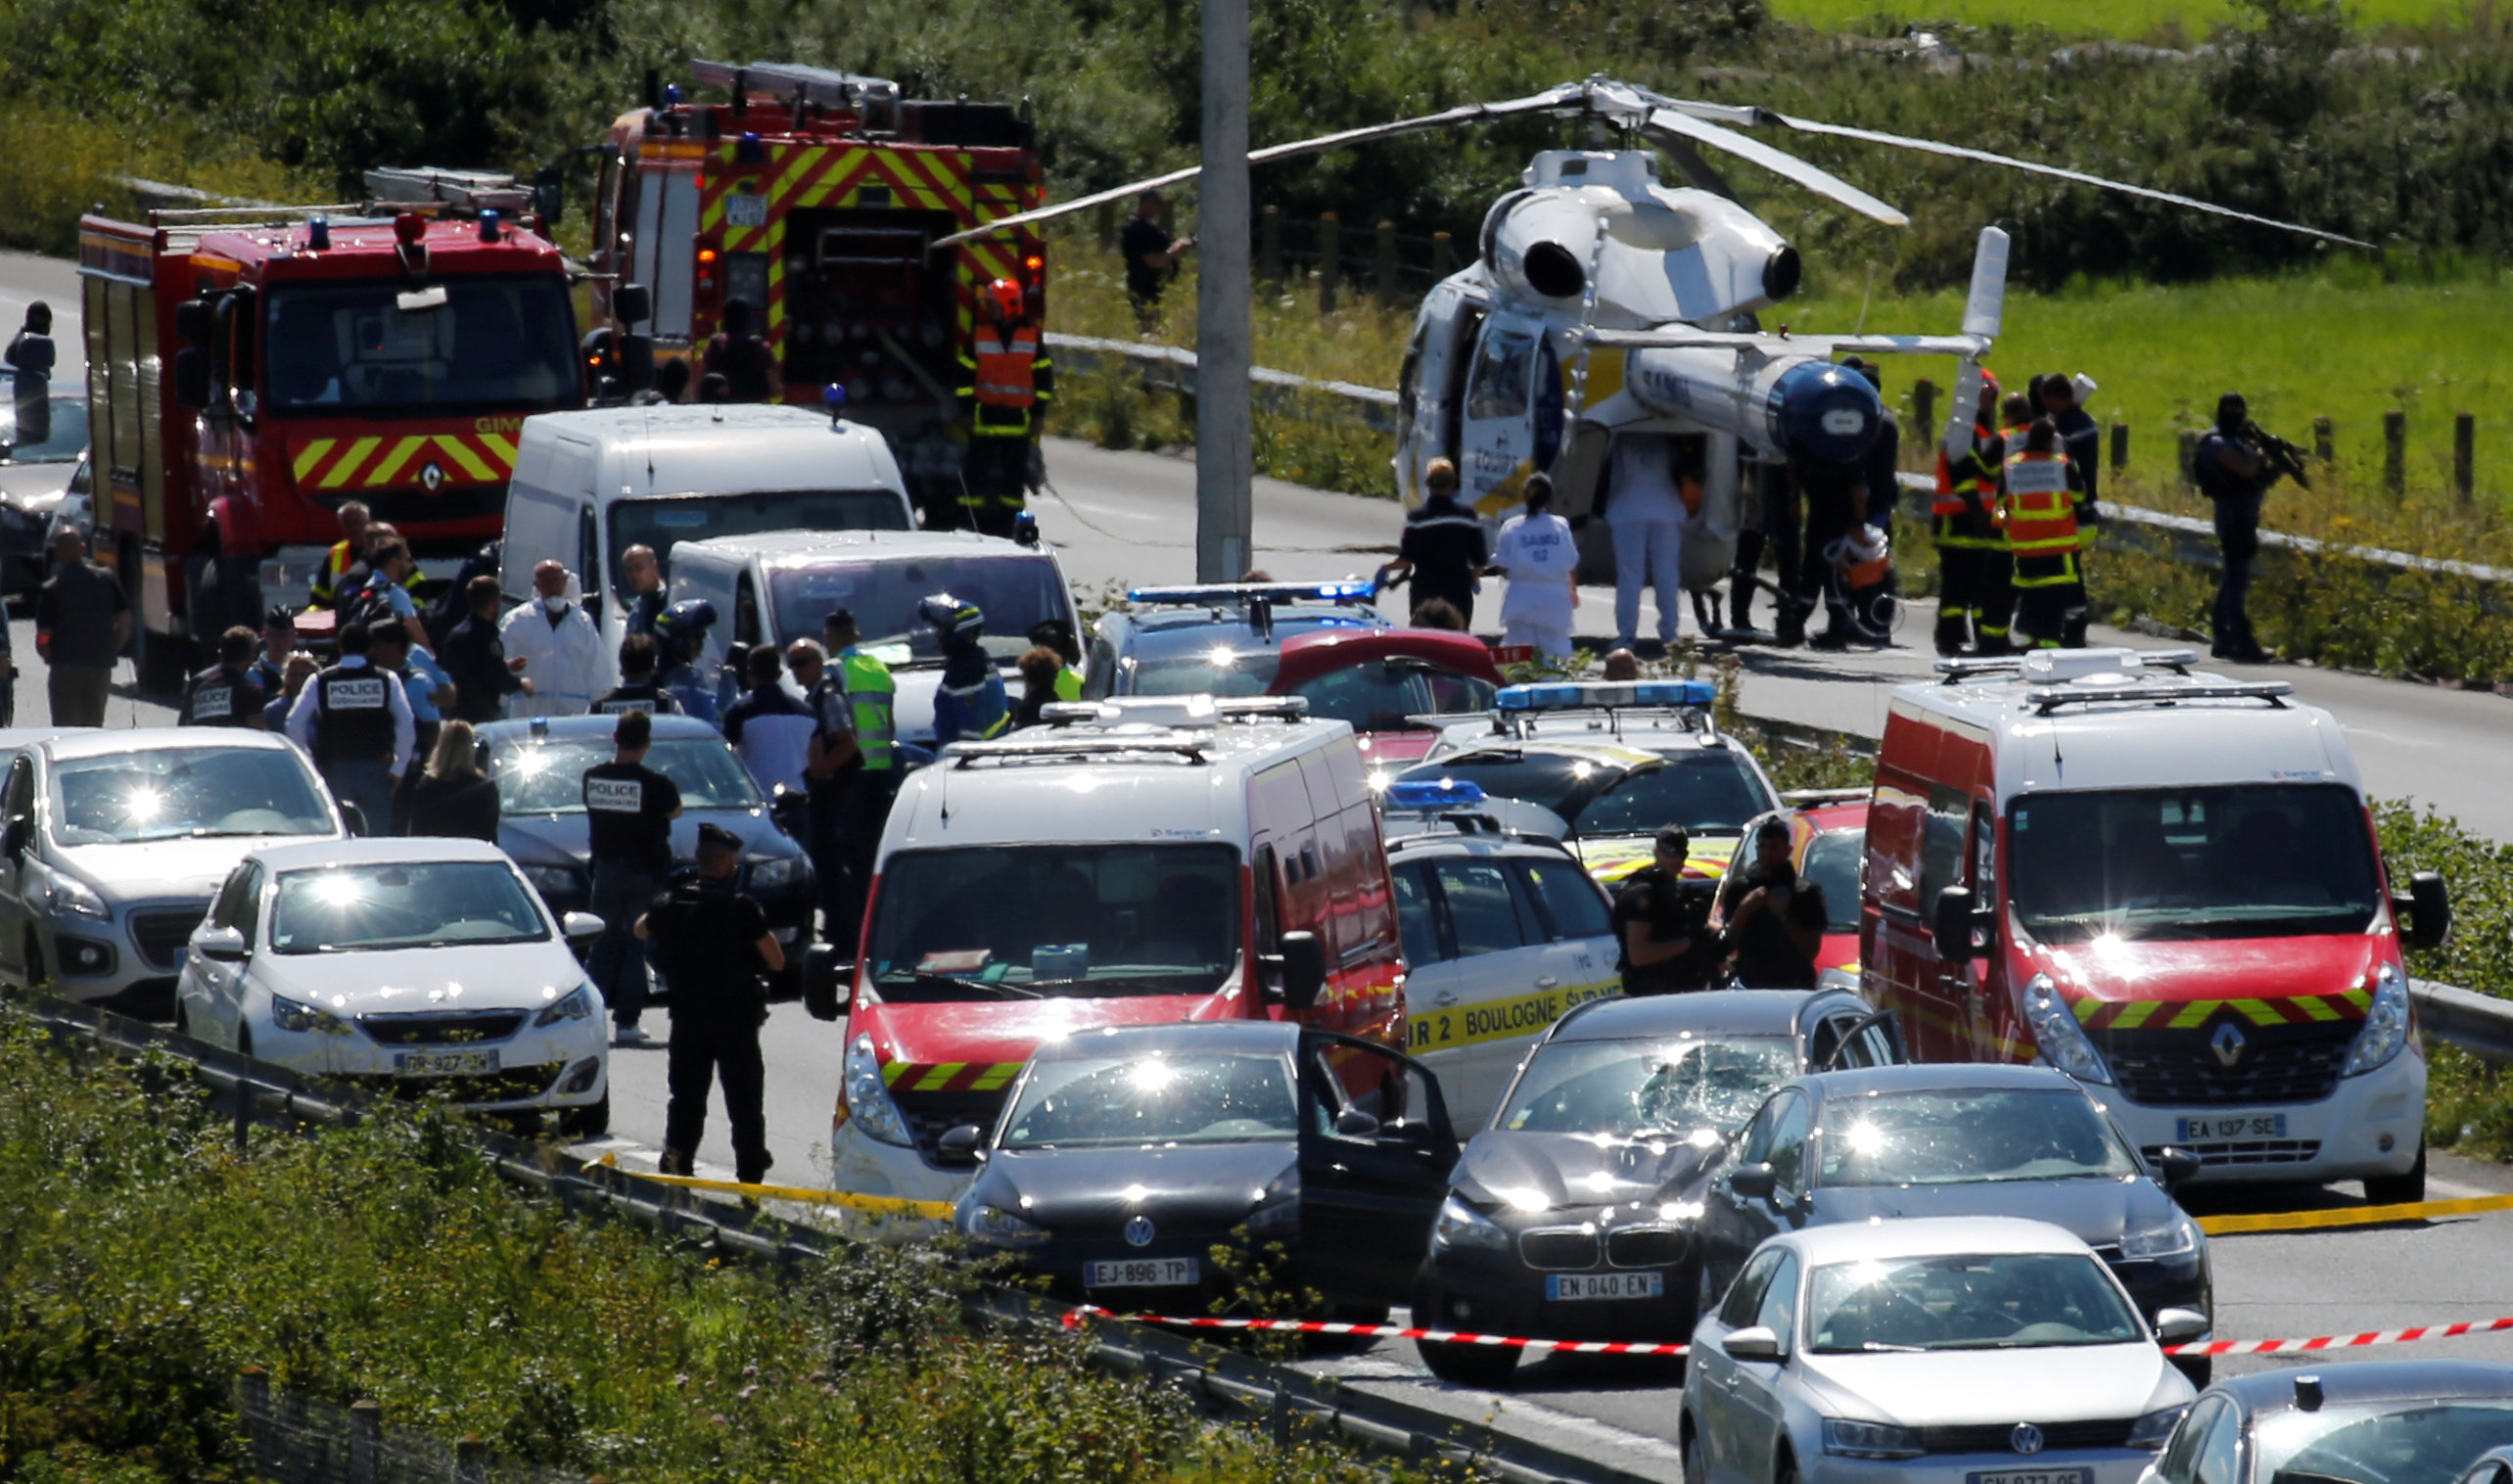 Police and rescue forces are seen on the scene where the man suspected of ramming a car into a group of soldiers on Wednesday in the Paris suburb of Levallois-Perret was shot and arrested on the A16 motorway, near Marquise, France on Aug. 9, 2017.  (REUTERS/Pascal Rossignol)